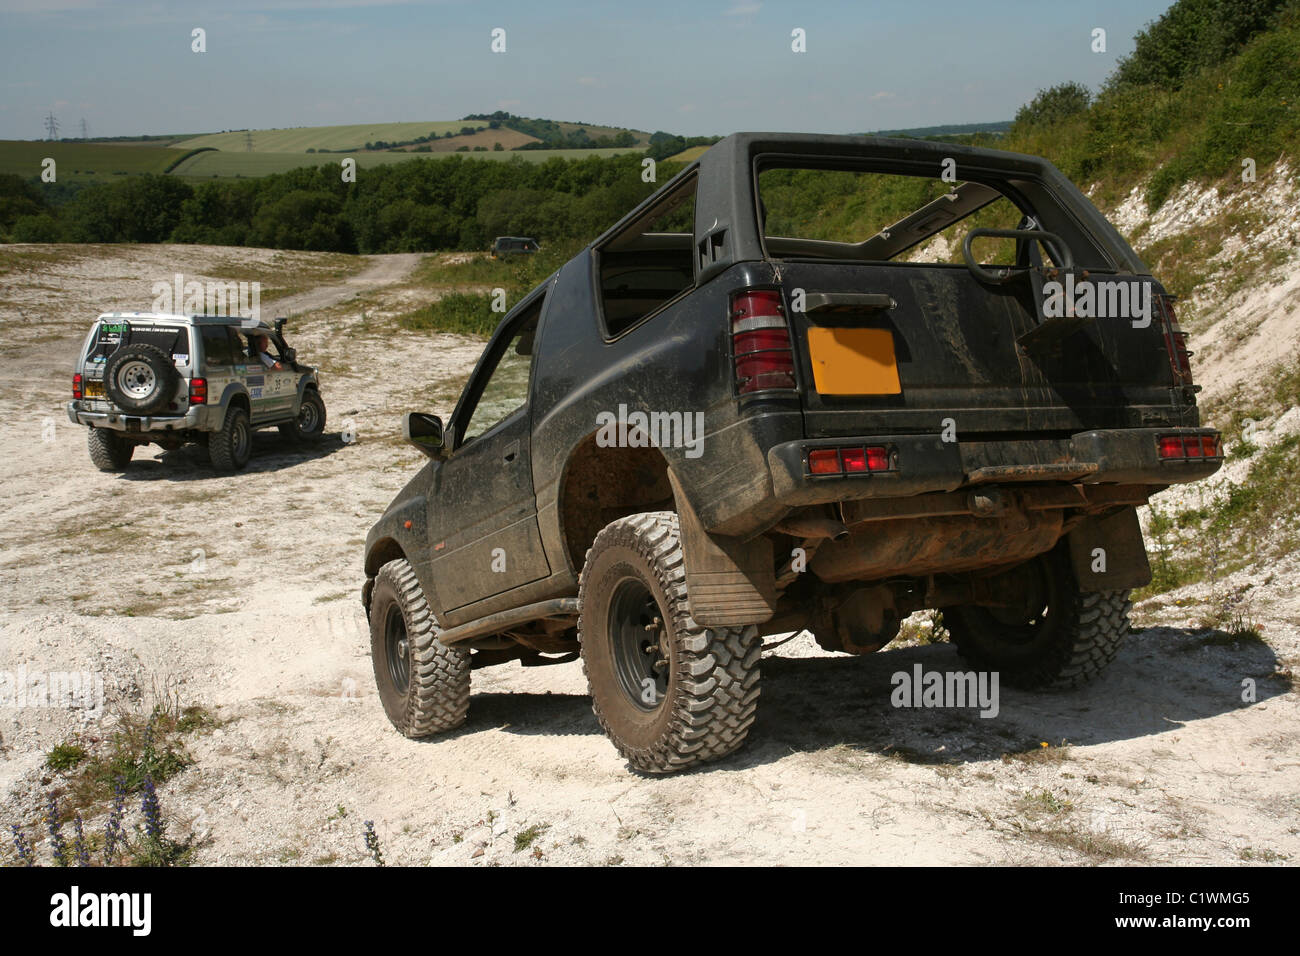 Two 4x4 off road vehicles driving in a chalk pit. Stock Photo